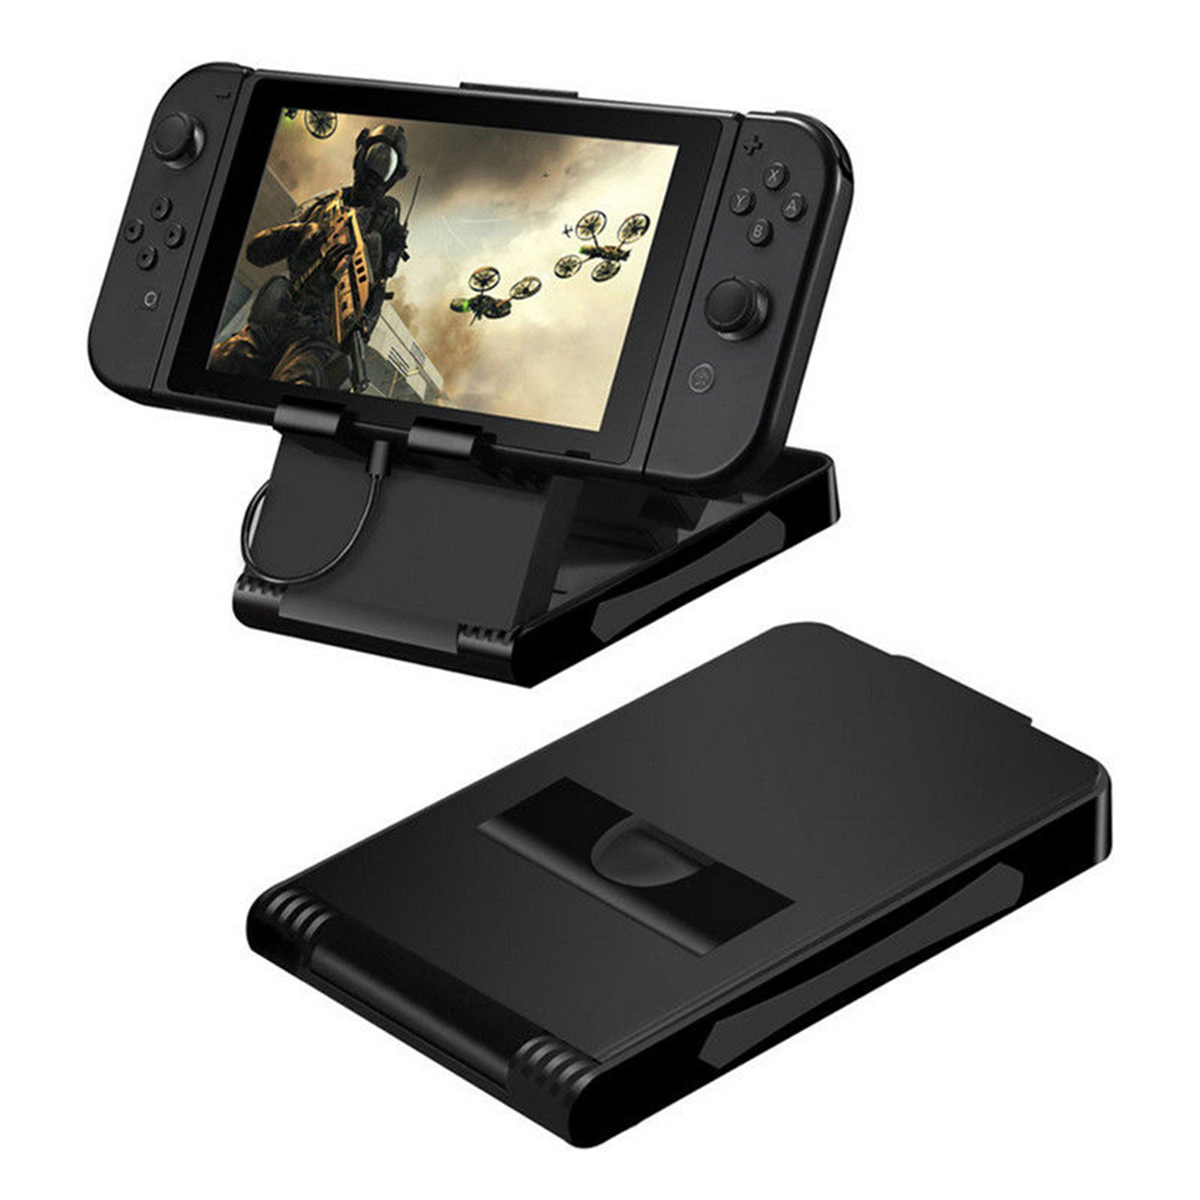 Bracket Stand Holder Mount Display Dock for Nintendo Switch Game Console 16